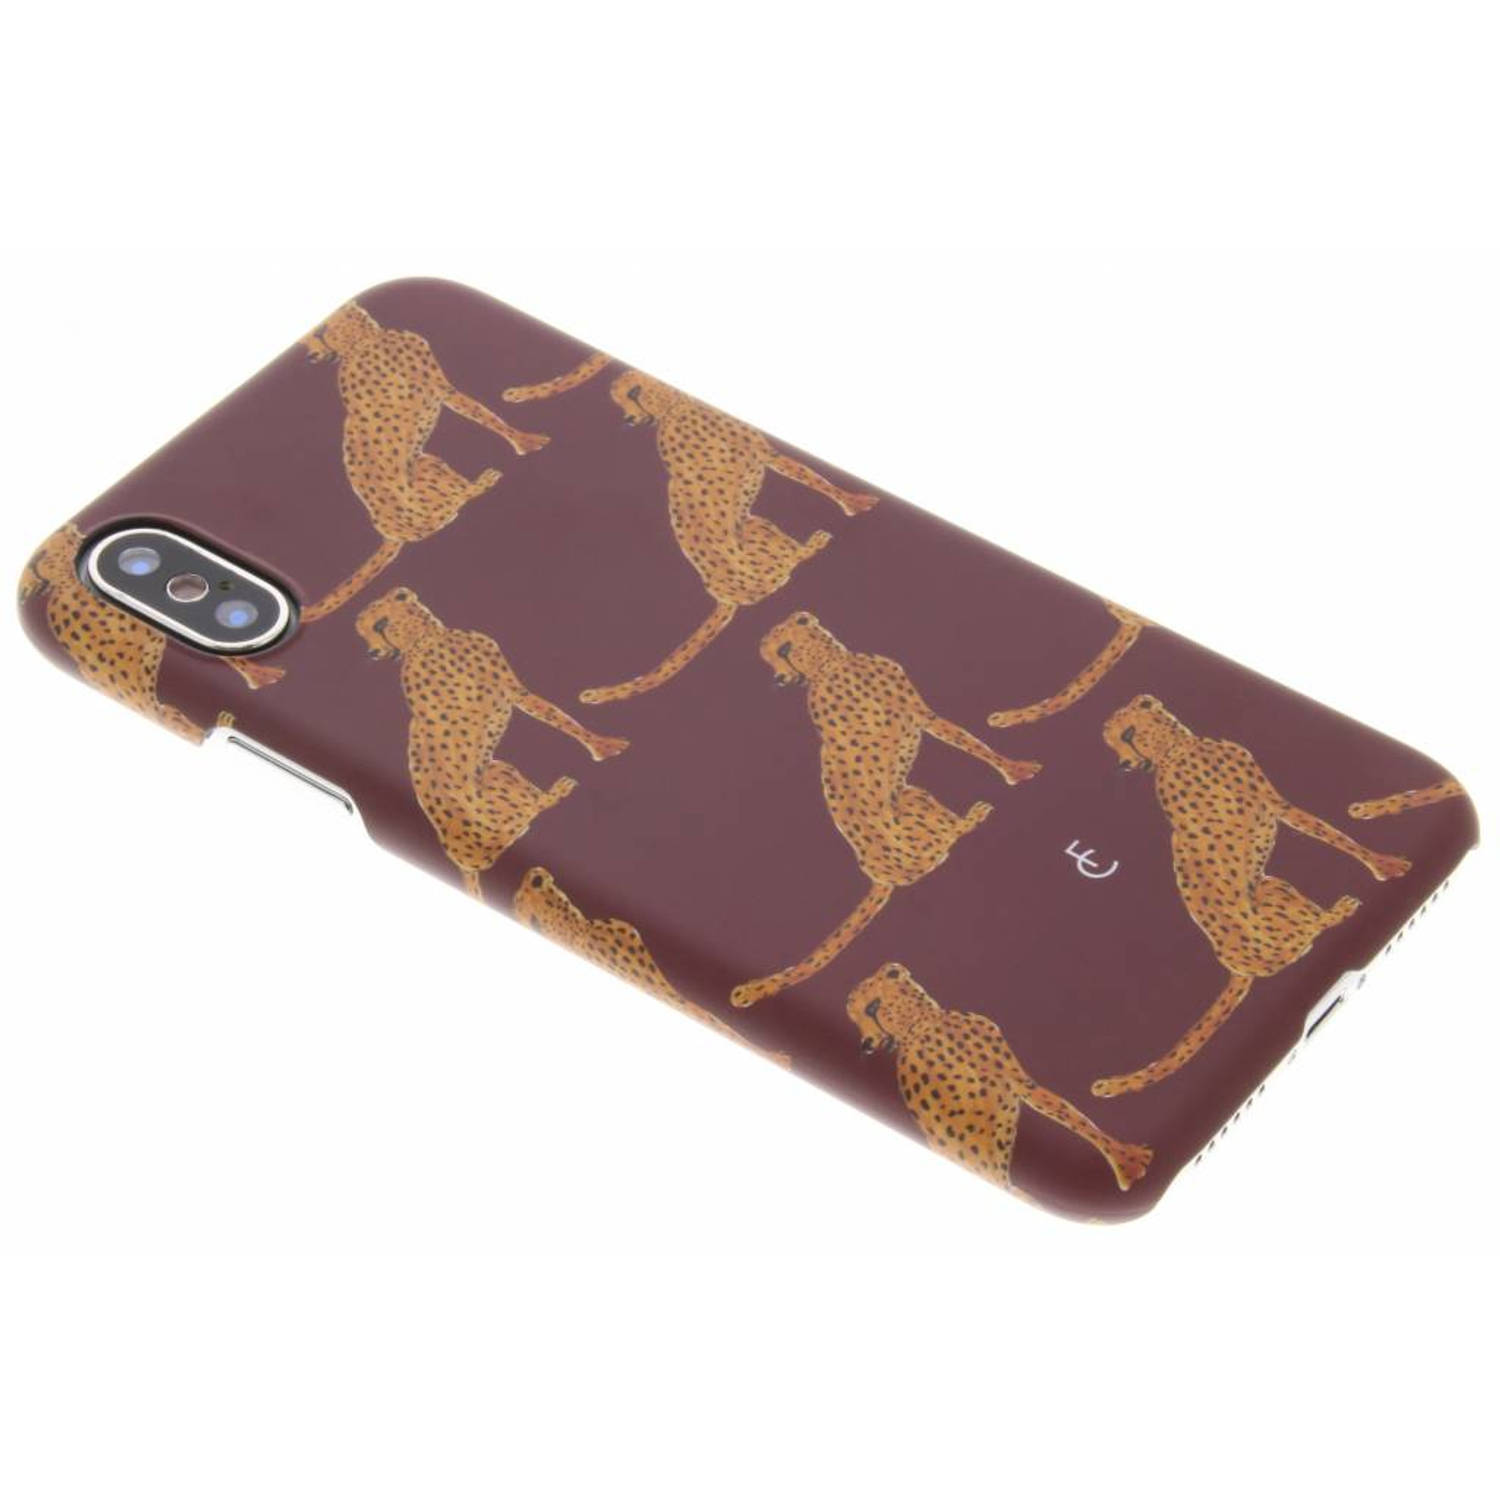 Cheetah Hardcase voor de iPhone X